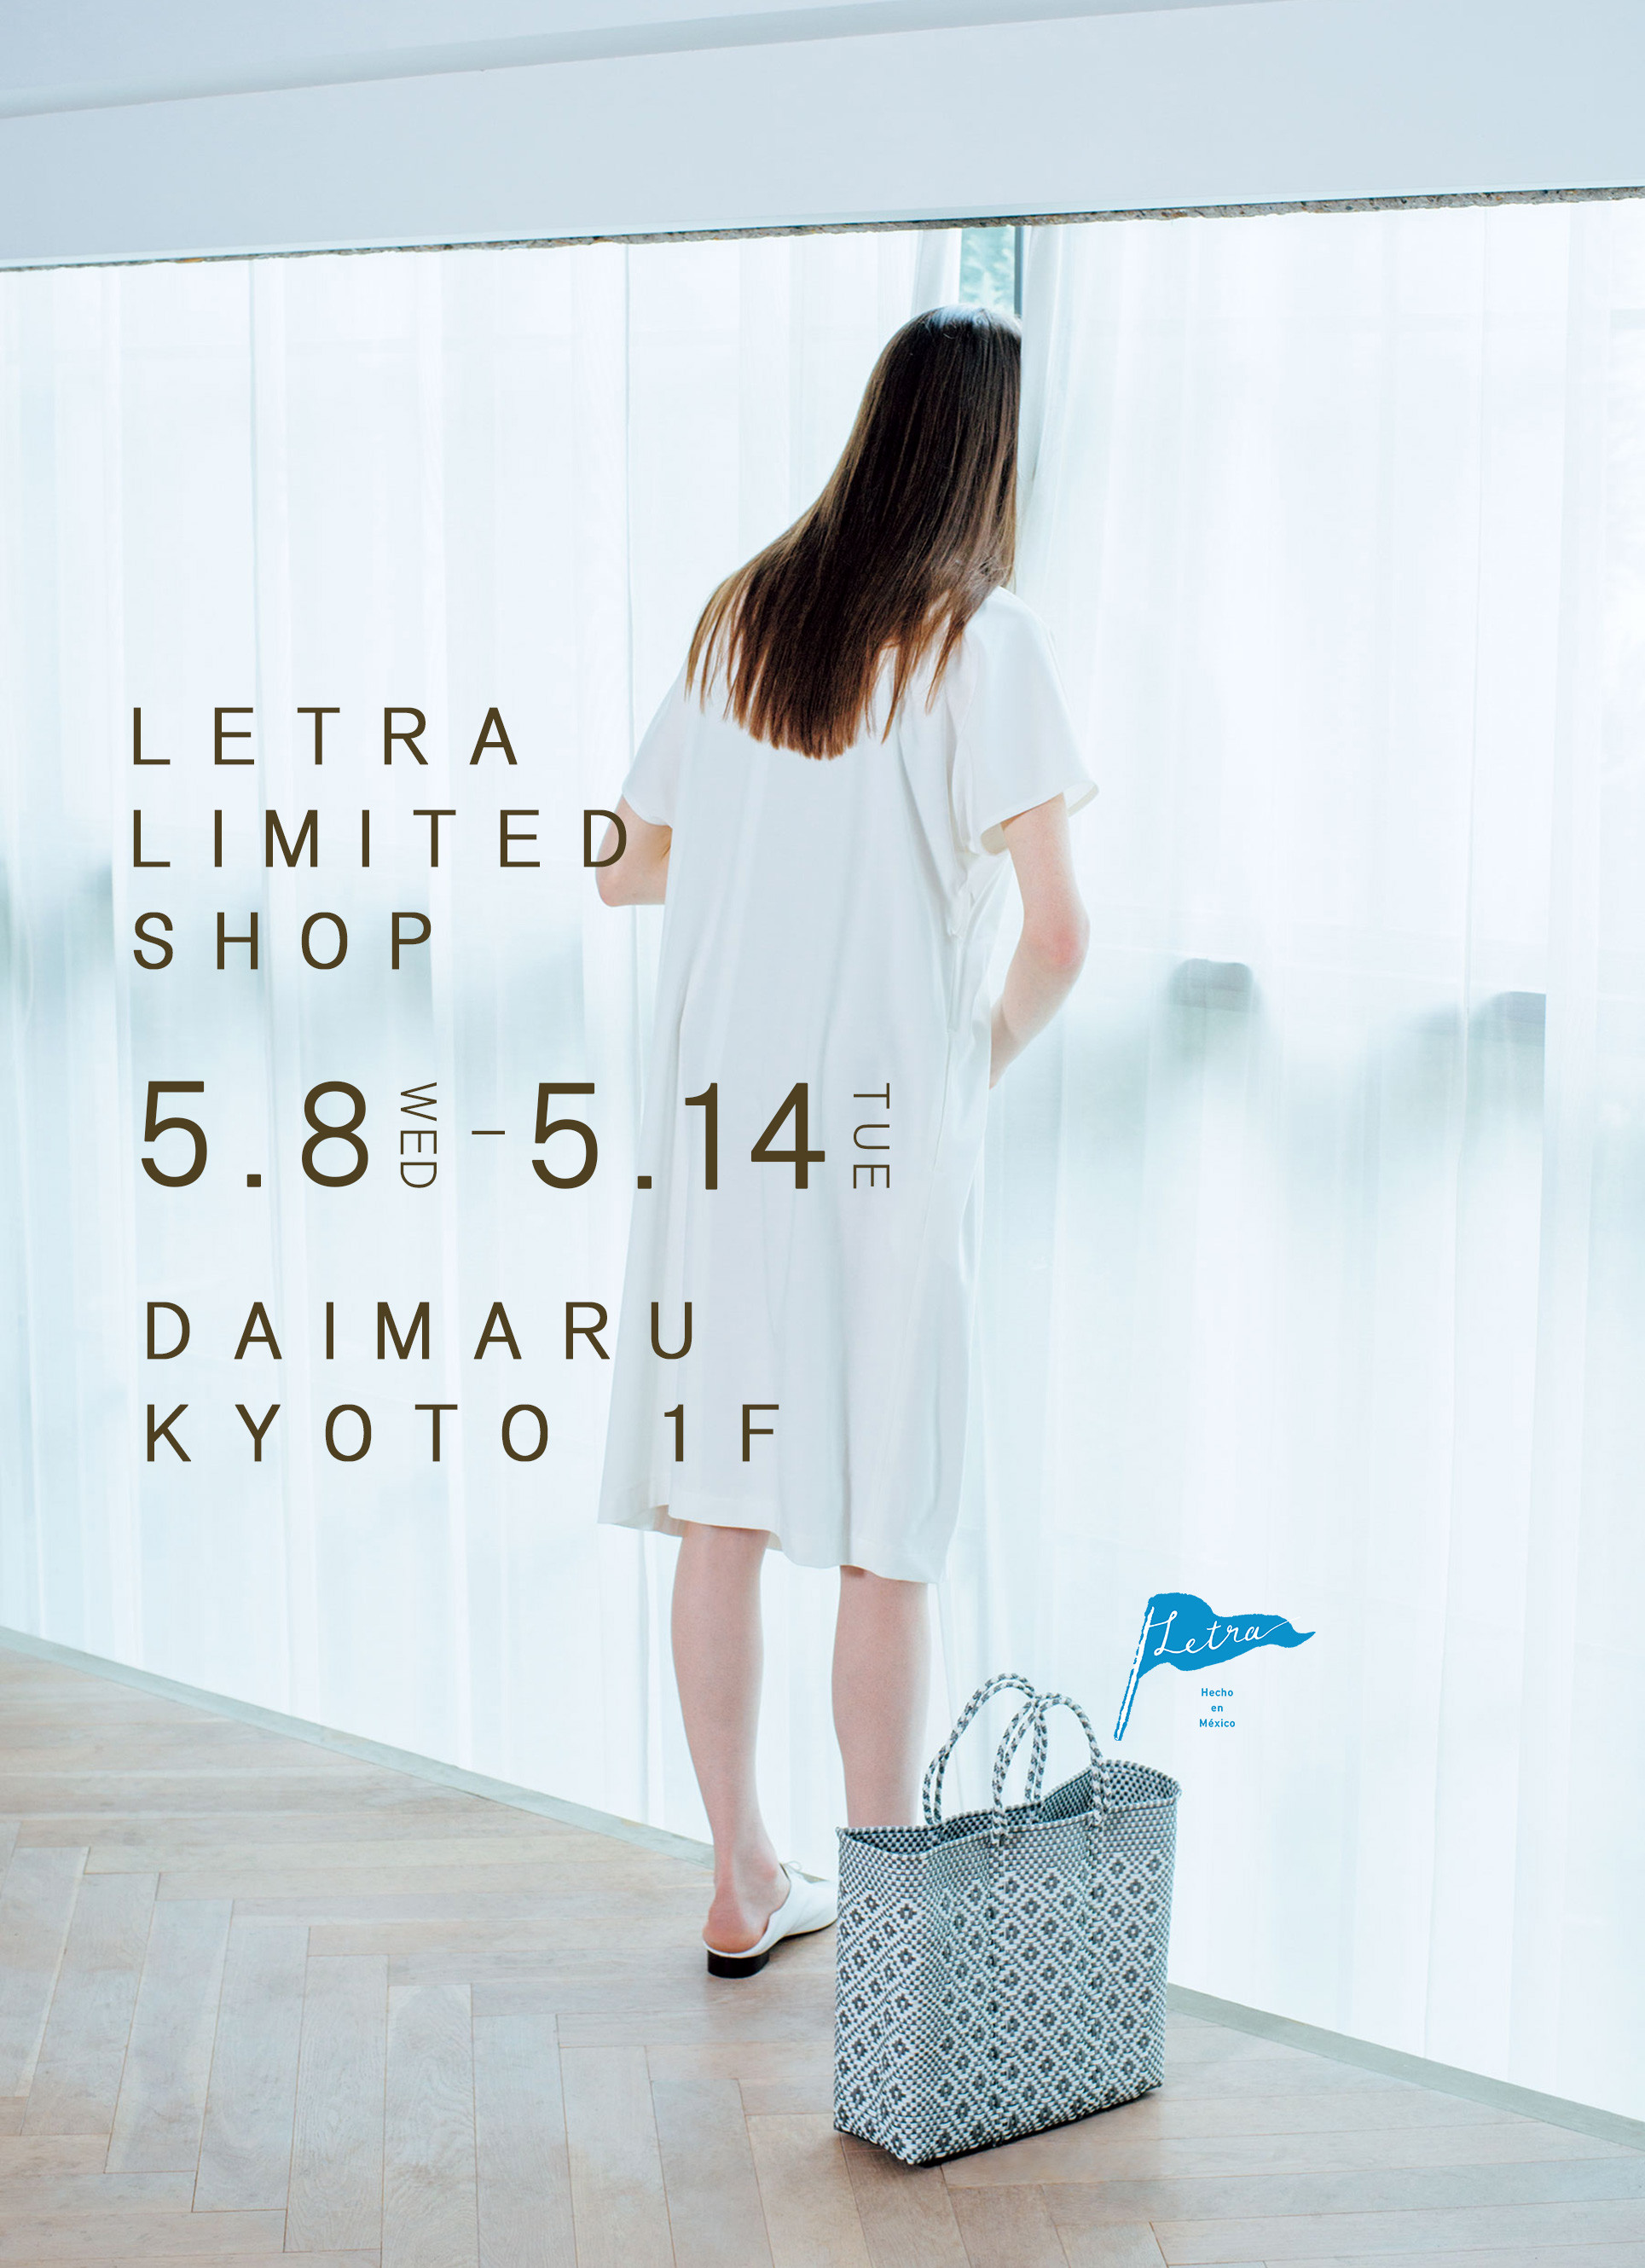 大丸京都店 Letra Limited SHOP OPEN!